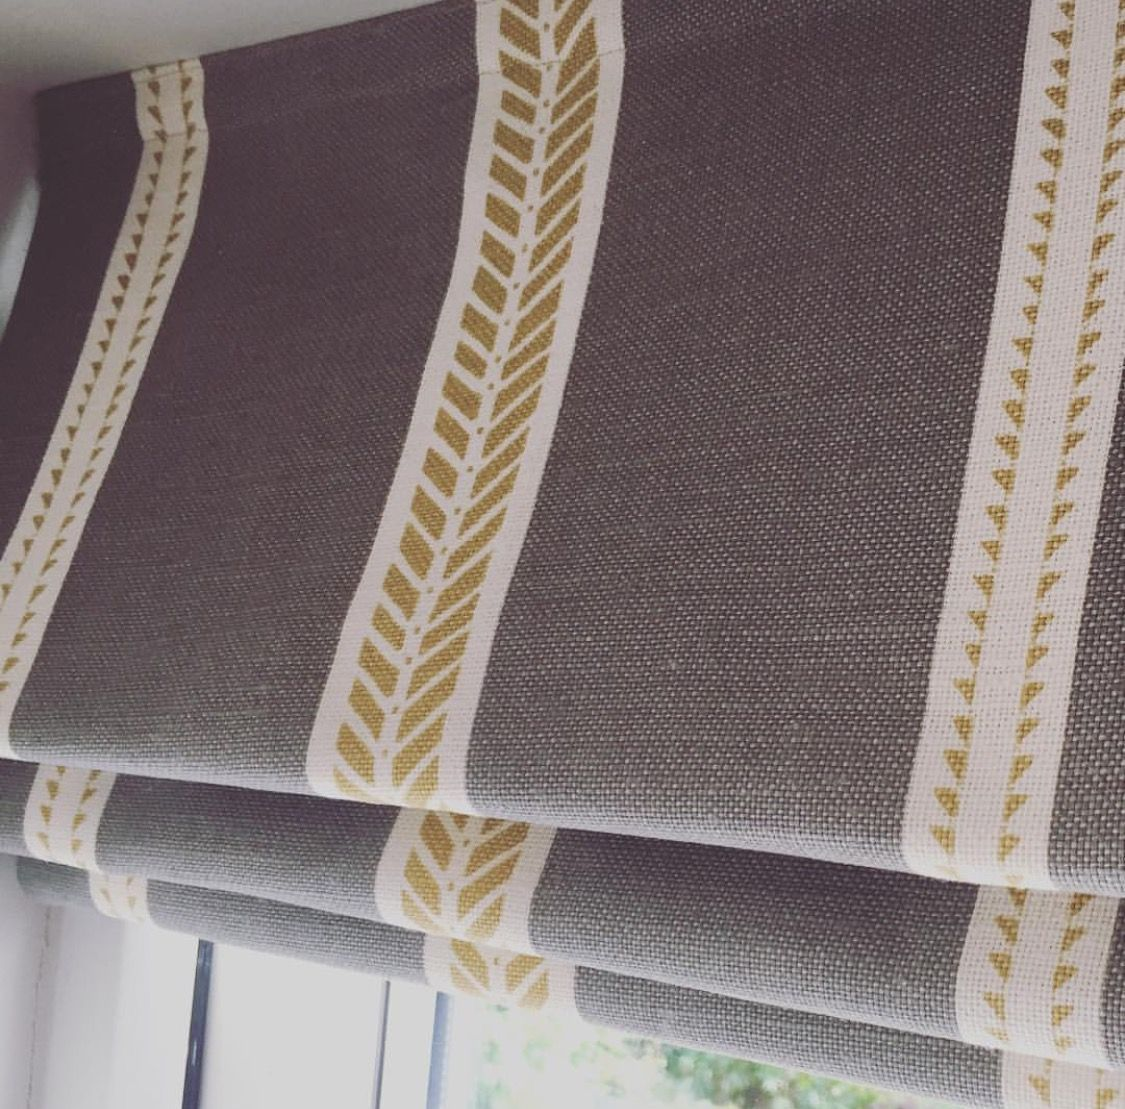 Roman blinds in slade stripe grey fabric by zoe glencross